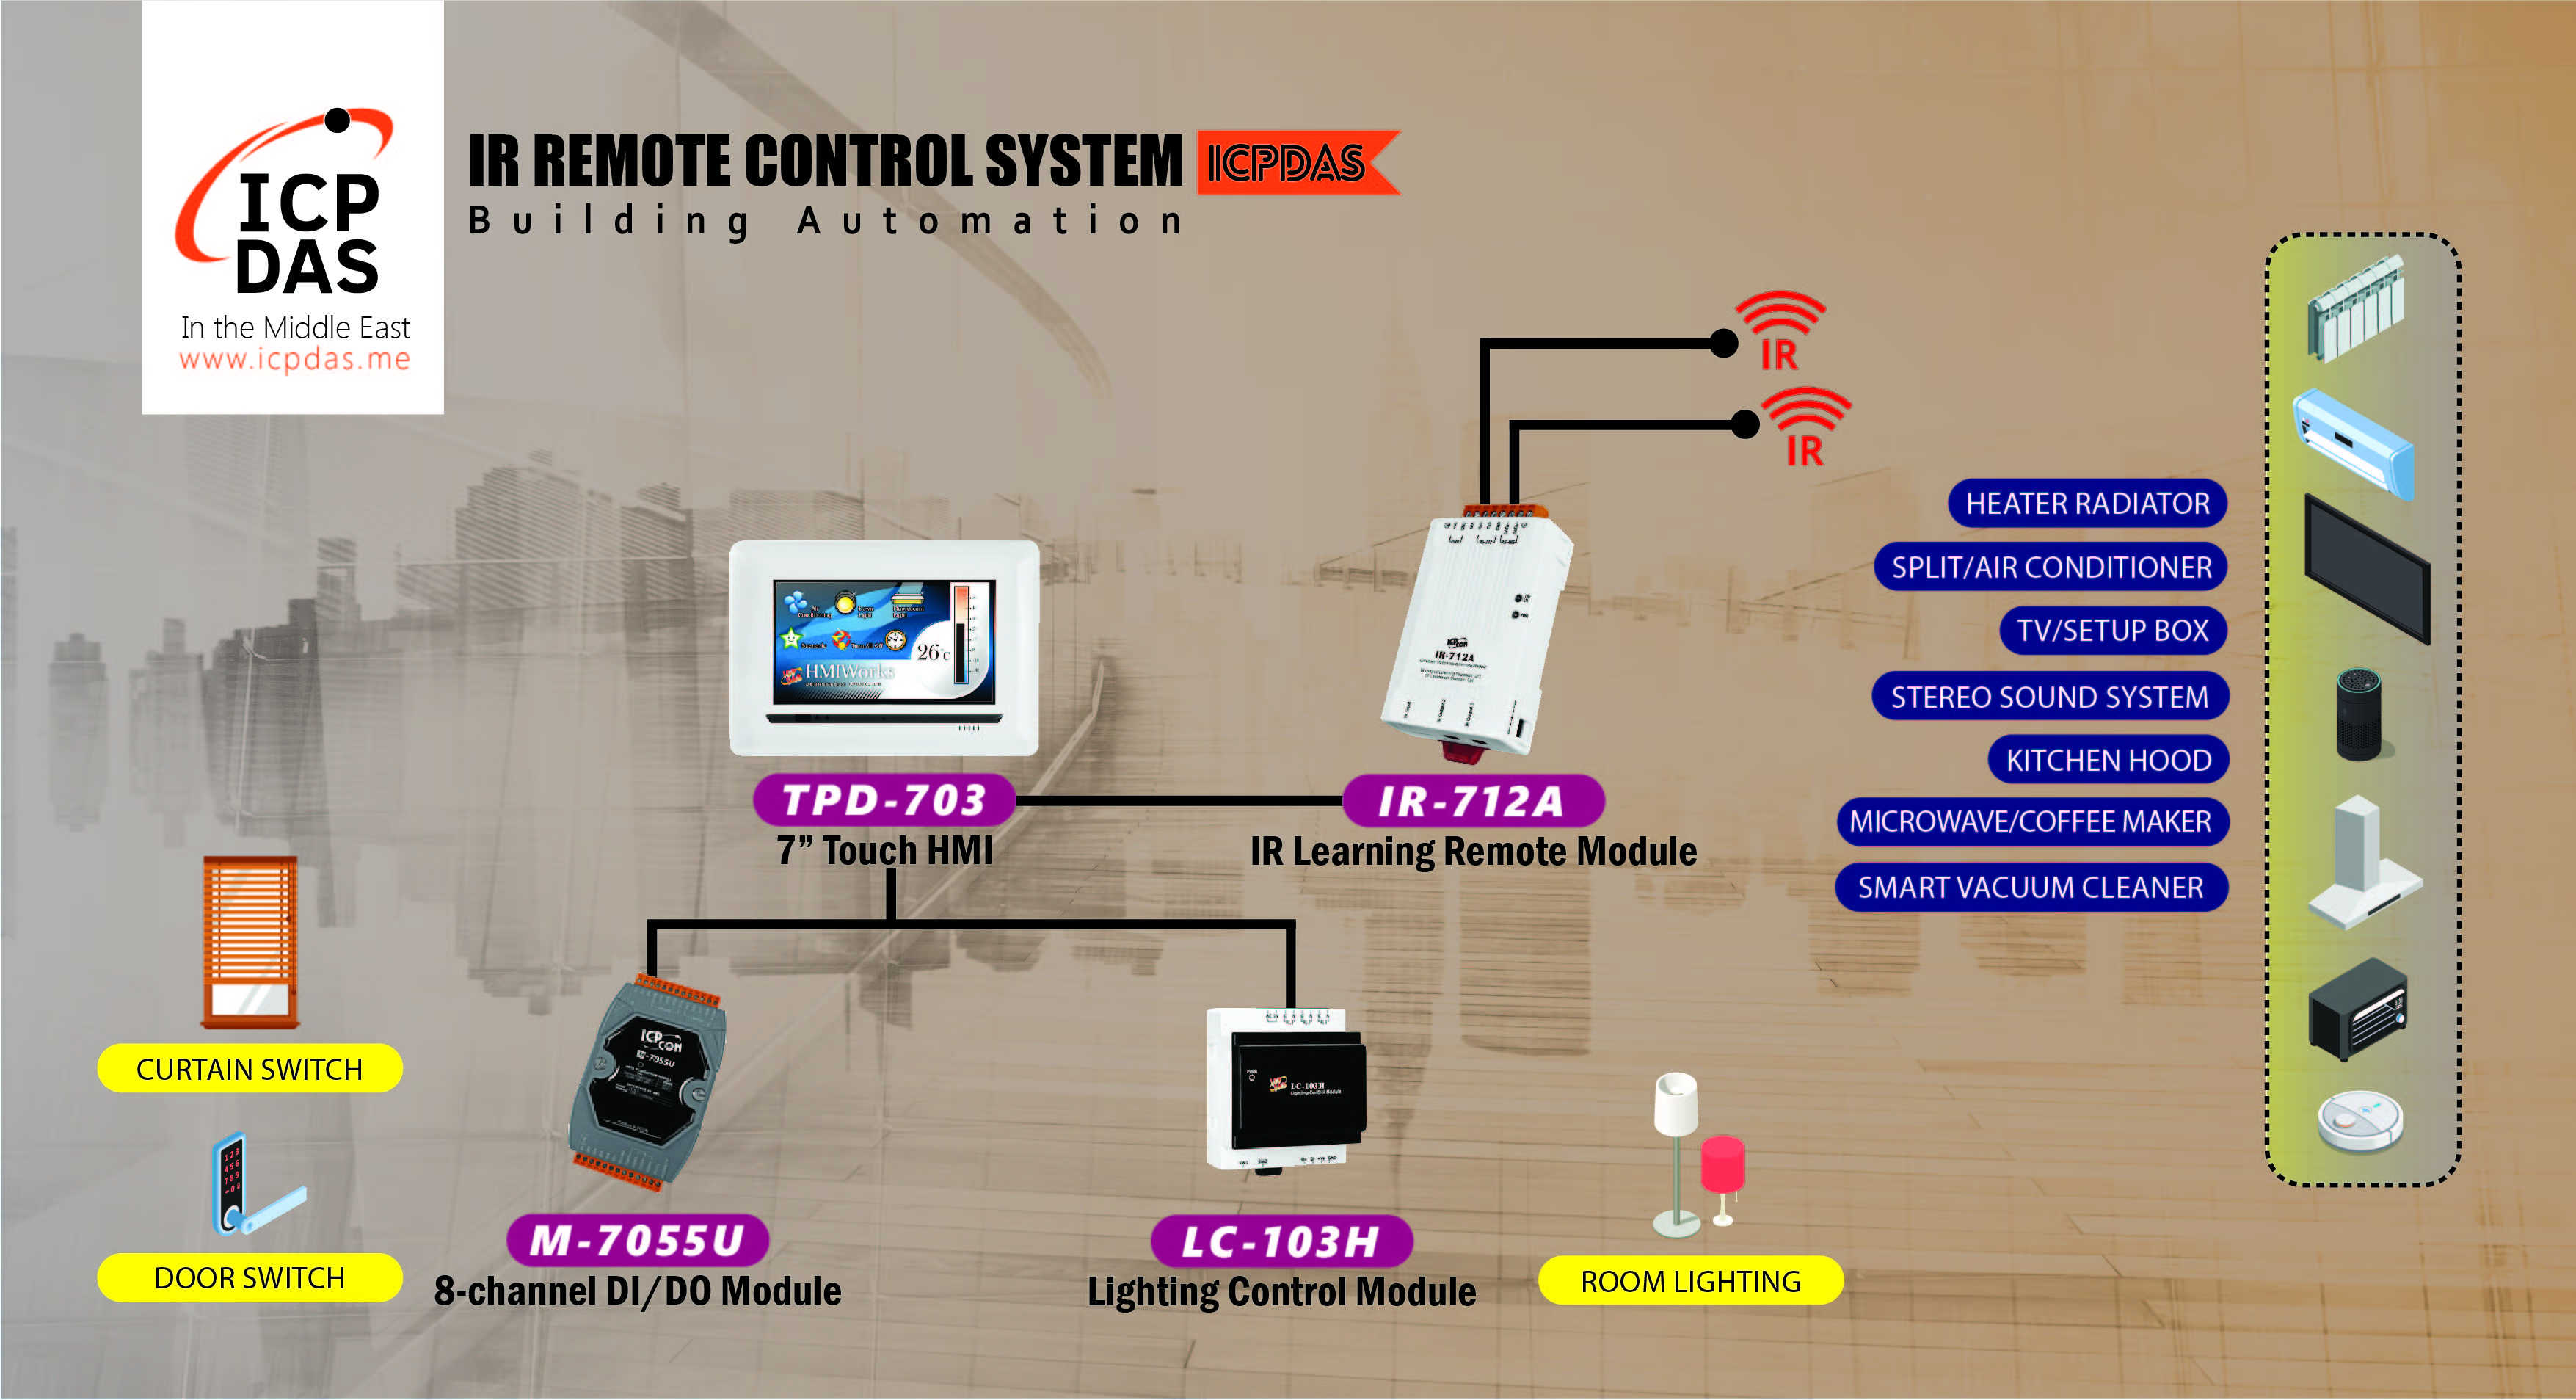 IR Remote Control System in Building Automation